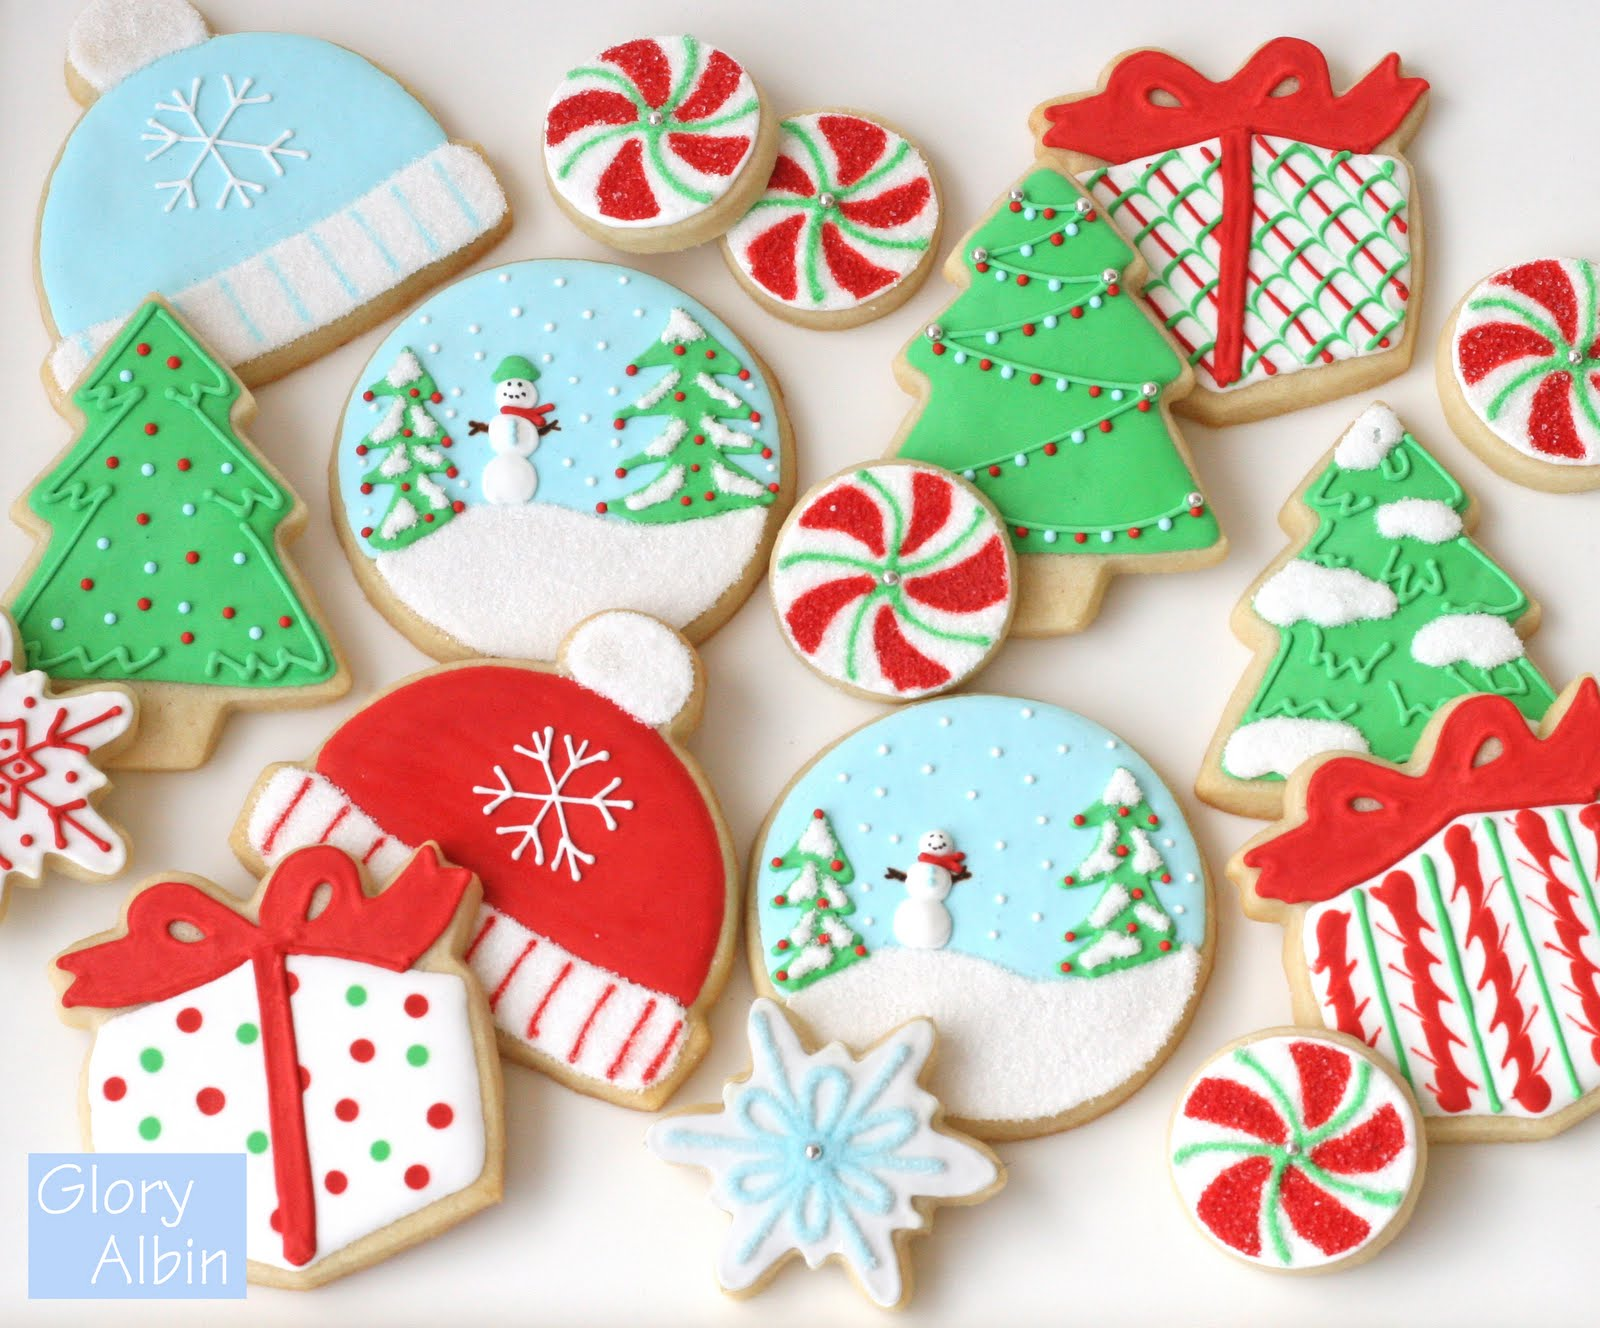 decorating sugar cookies with royal icing glorious treats - How To Decorate Christmas Cookies With Royal Icing